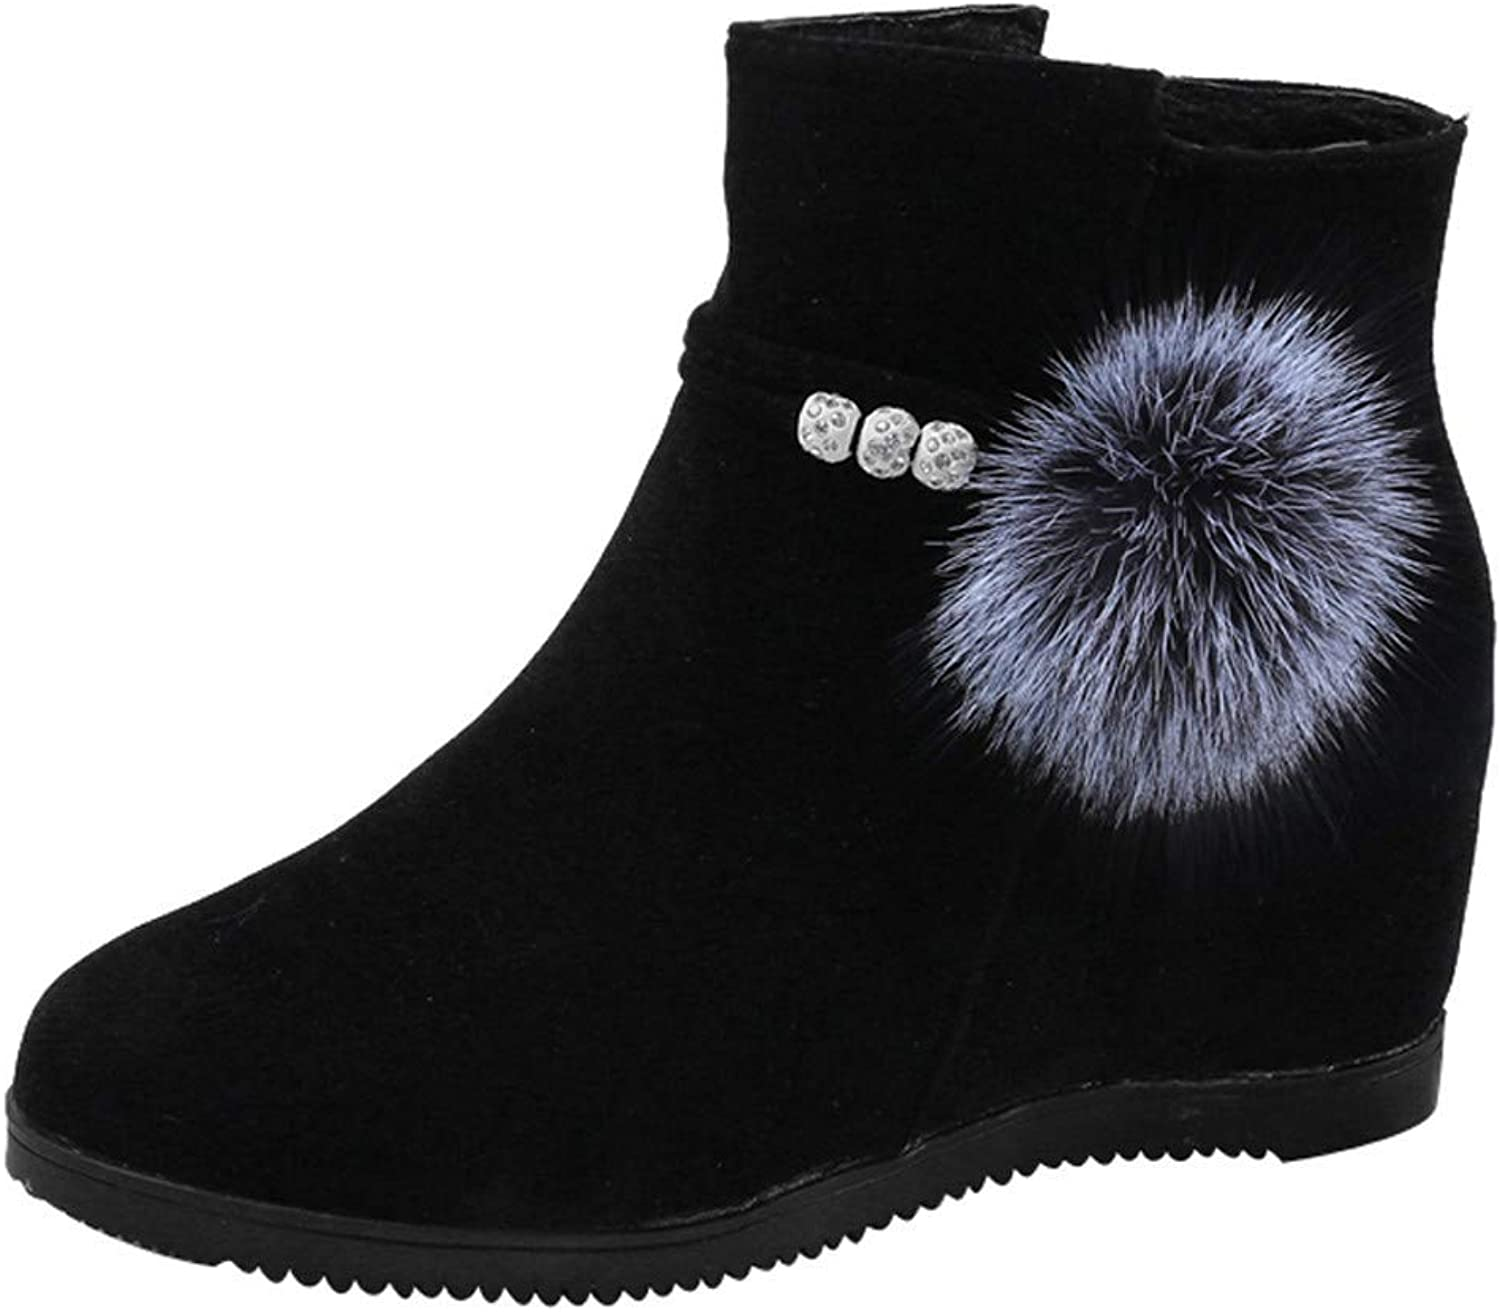 JaHGDU Women Suede Hairball Round Toe Wedges shoes Pure color Zipper Martin Boots Fashion Leisure Elegant Cosy Wild Tight Super Quality for Womens